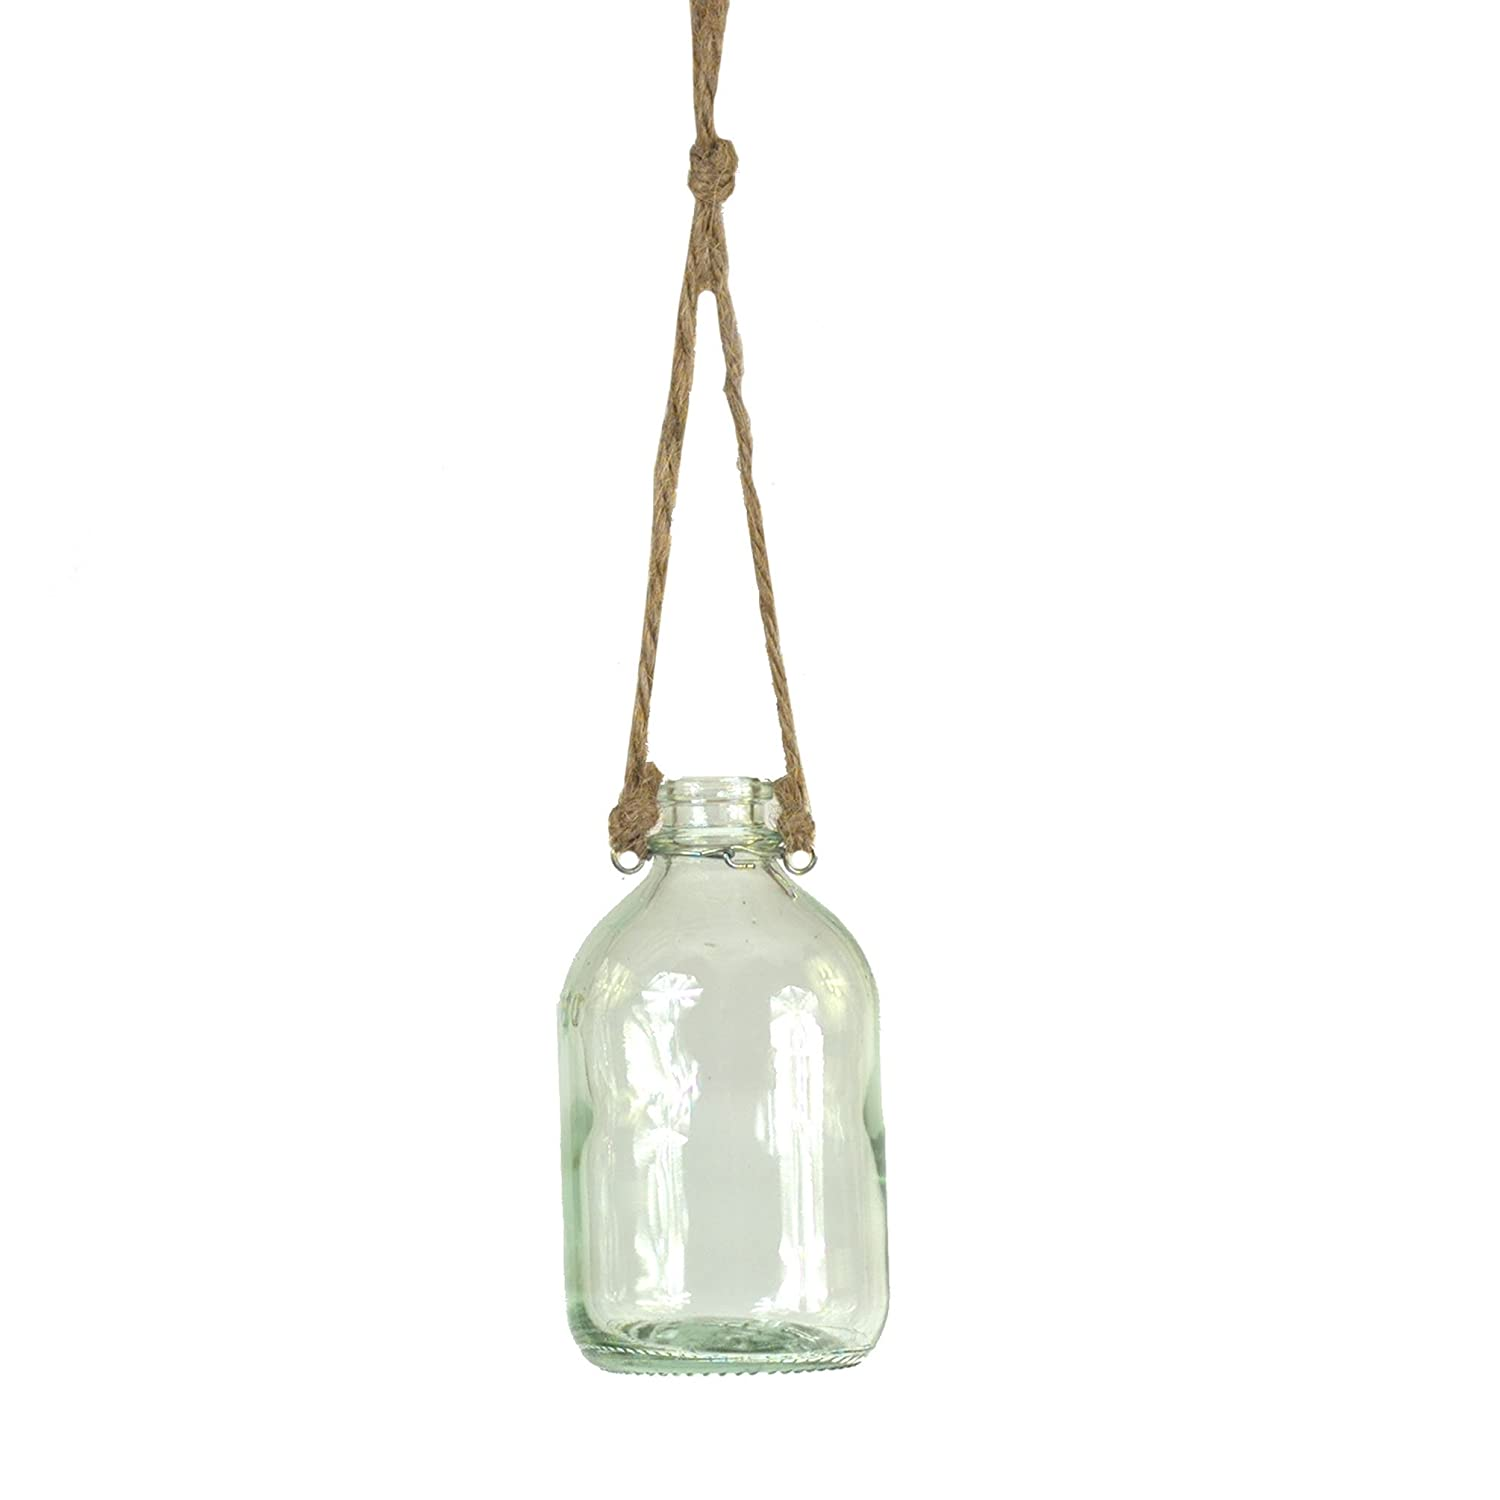 Hanging bottle with jute rope for French farmhouse and European country style spaces.